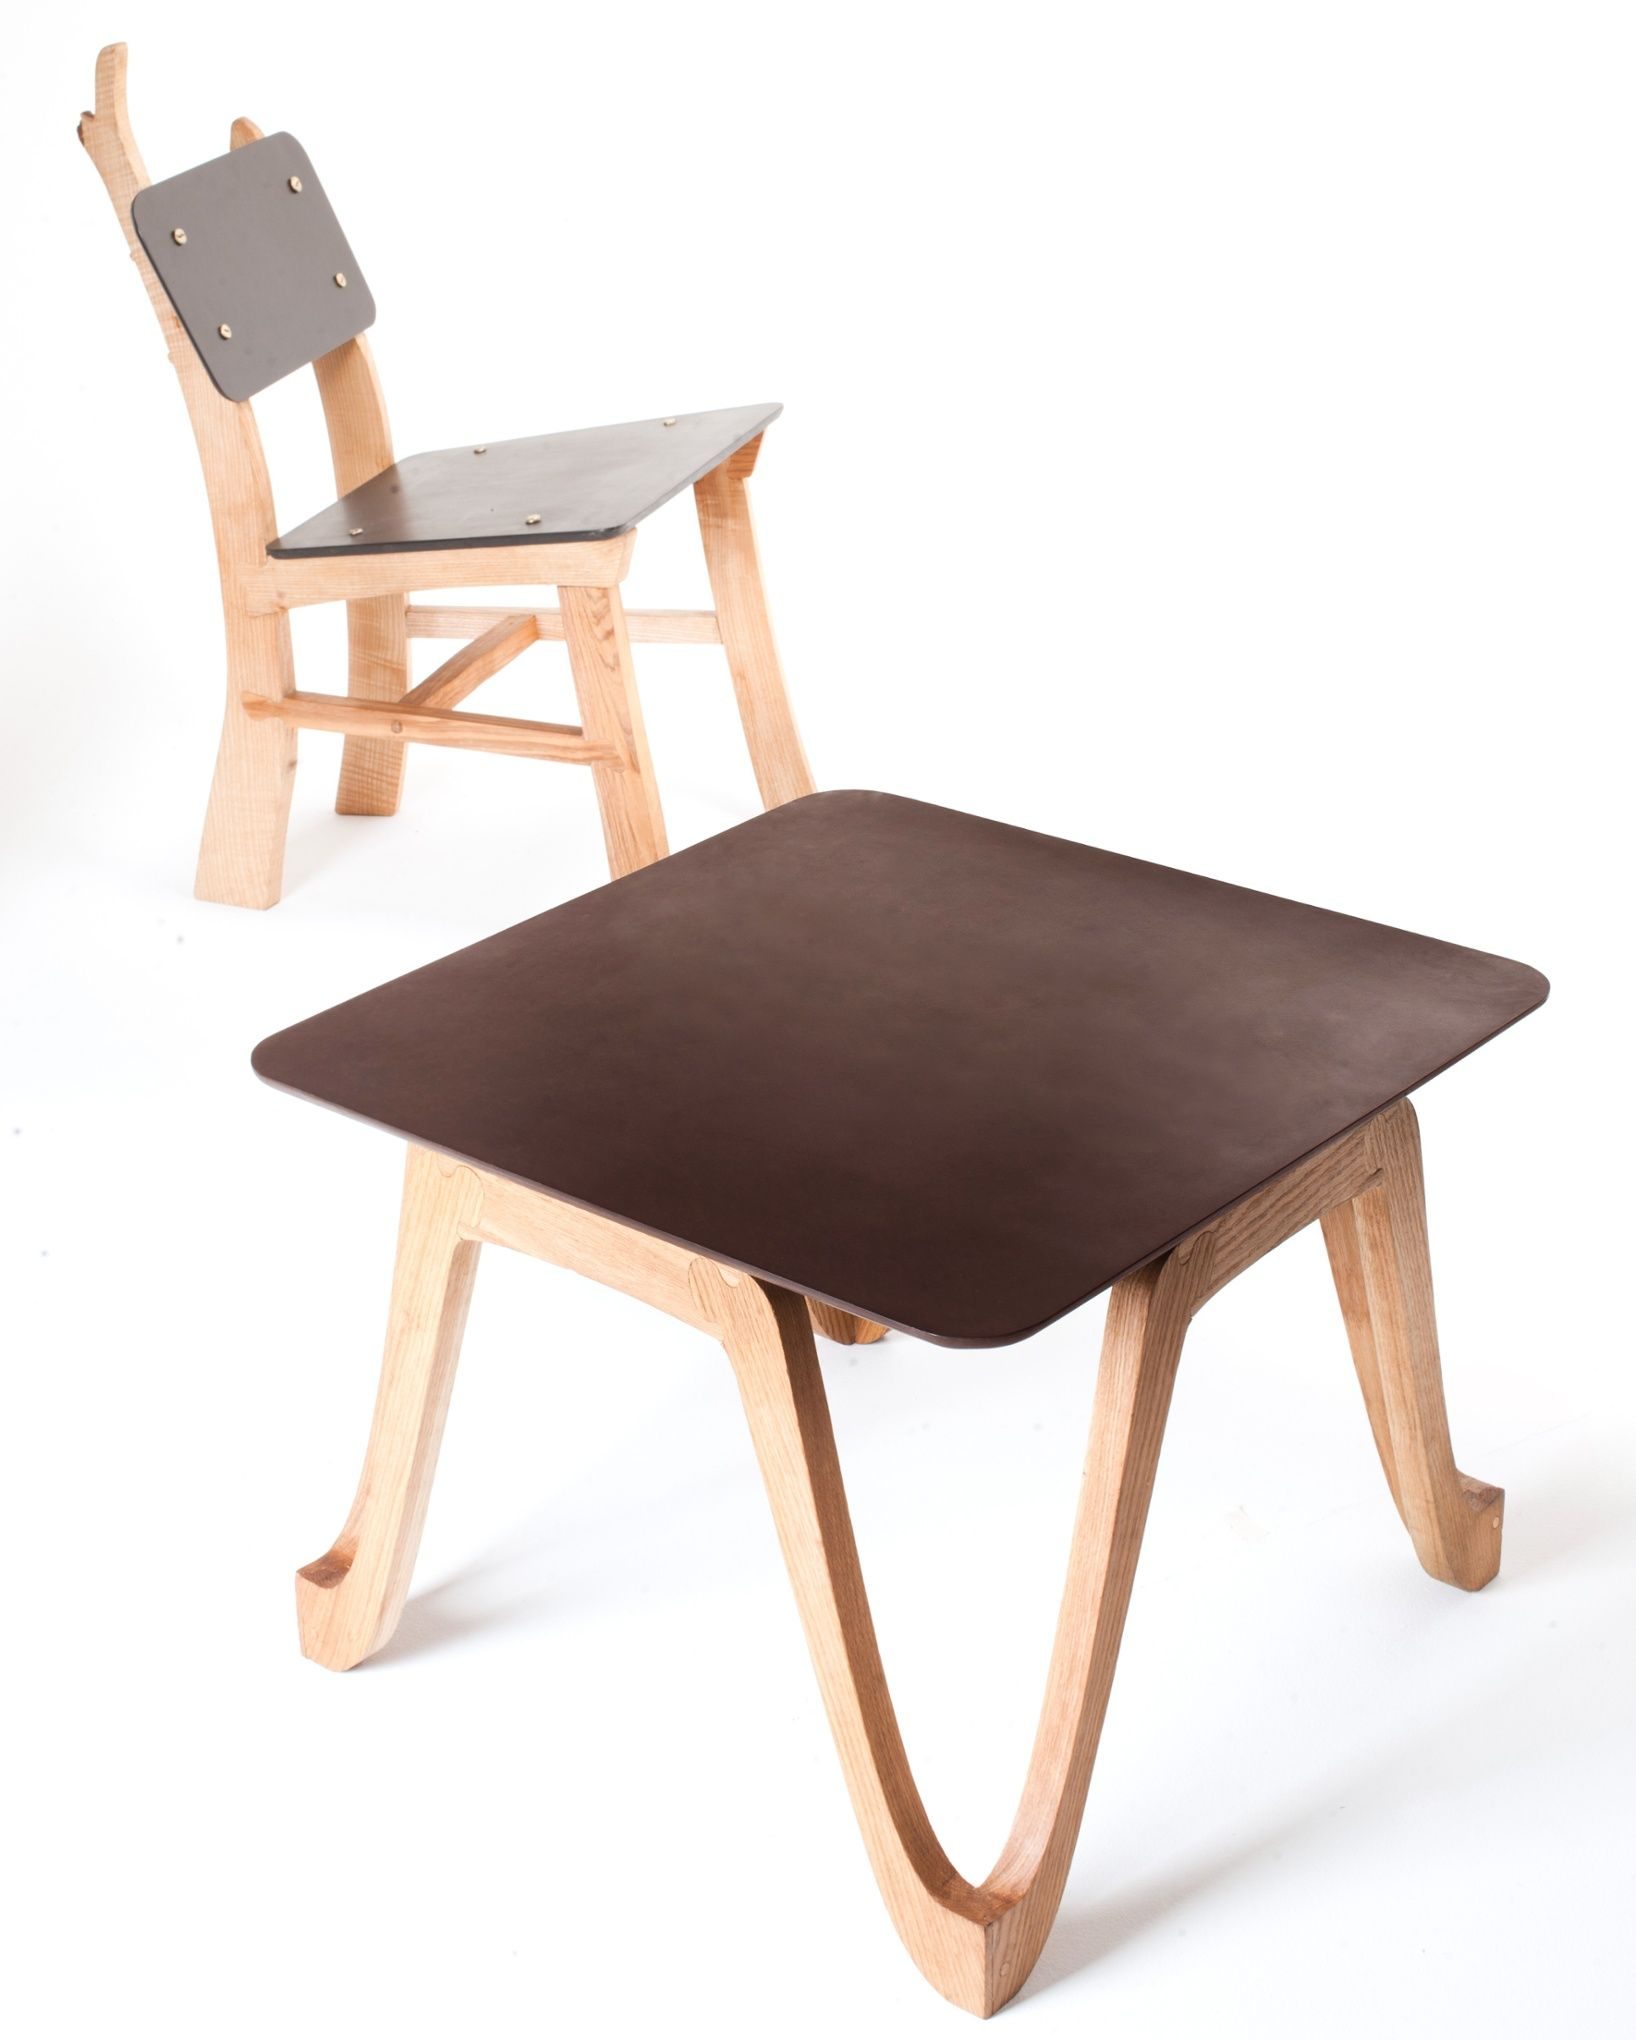 The Uk Company Turning Coffee Waste Into Furniture